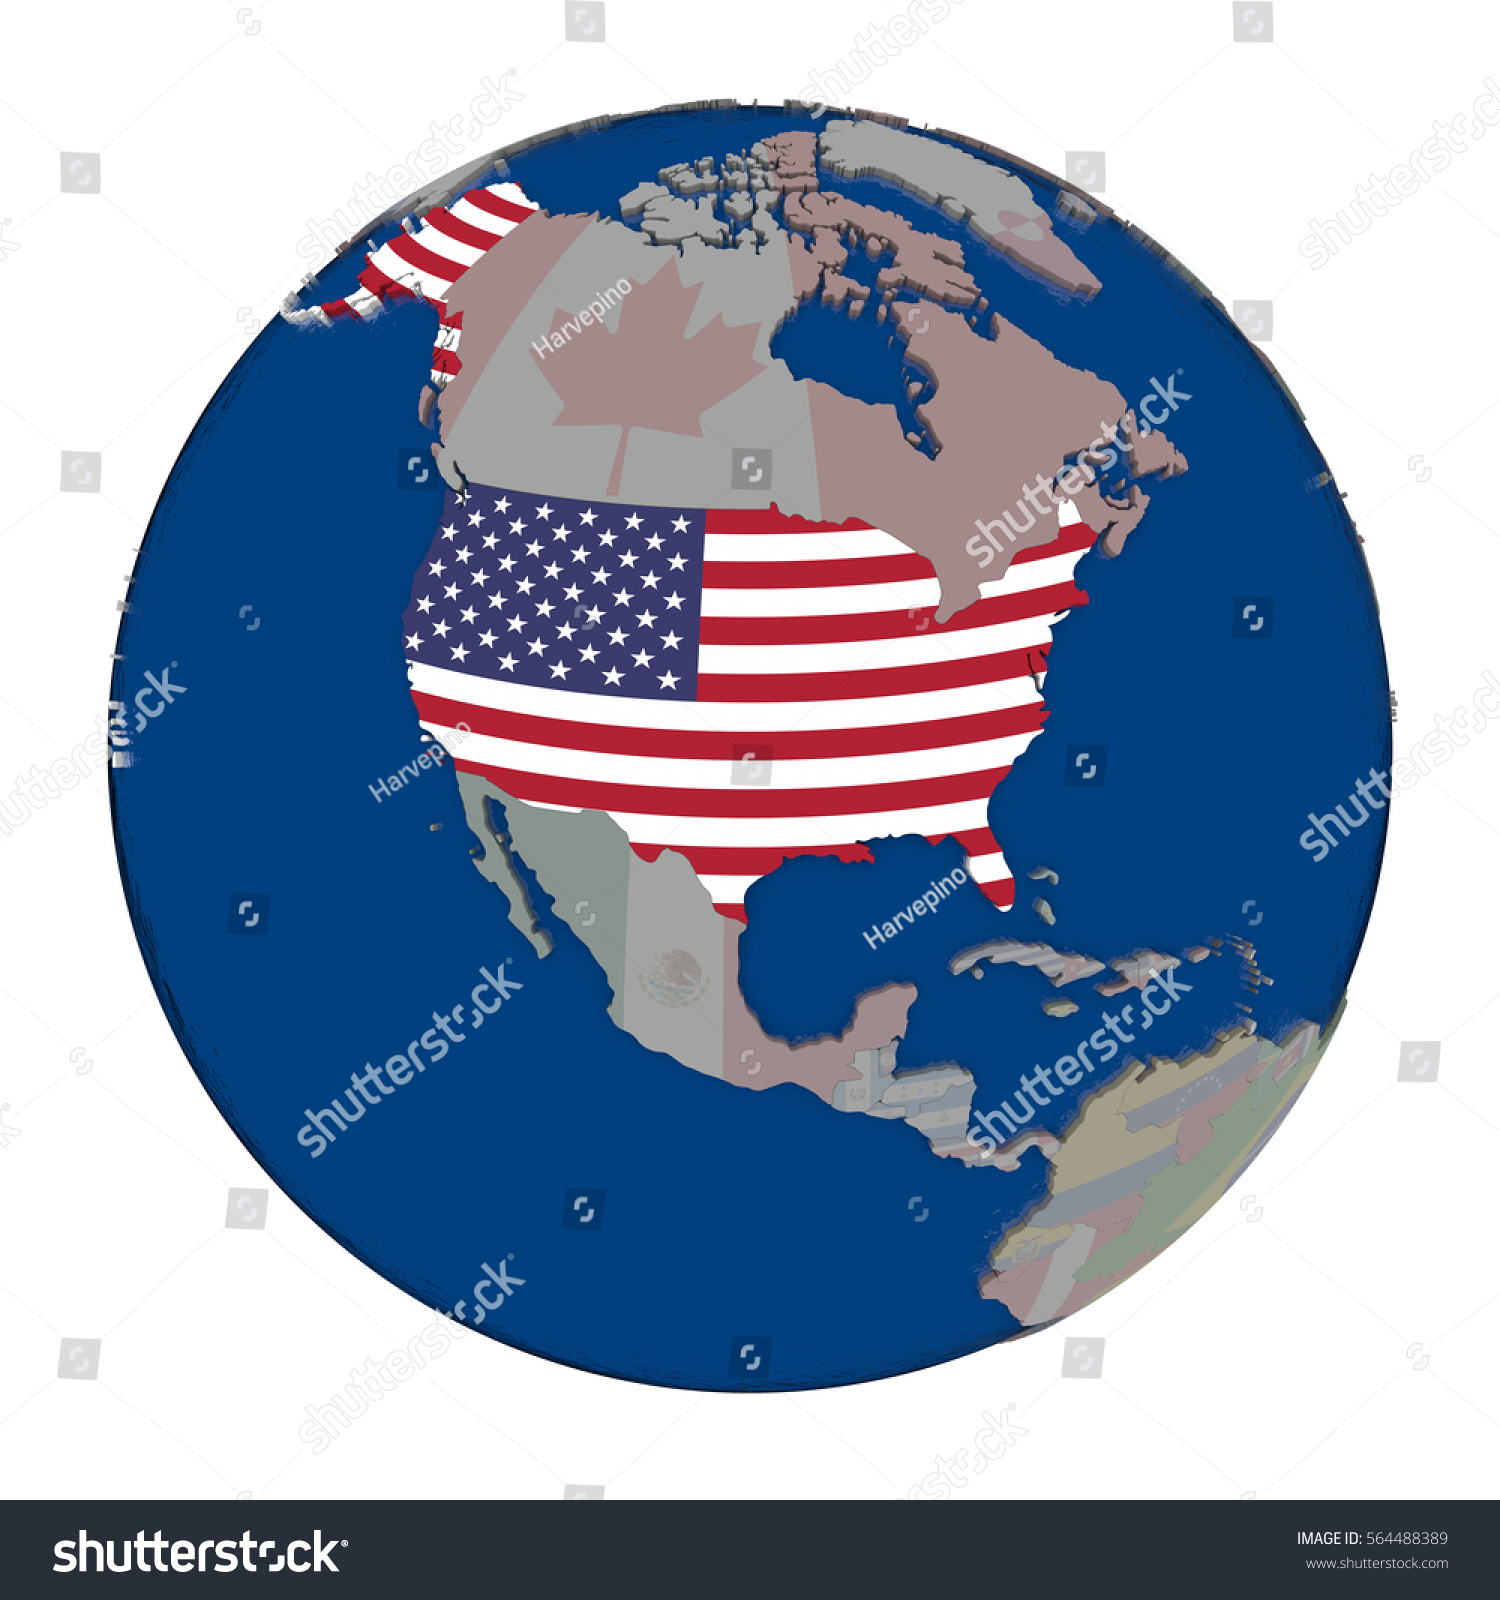 Usa Embedded National Flag On Political Stock Illustration - Globe of usa